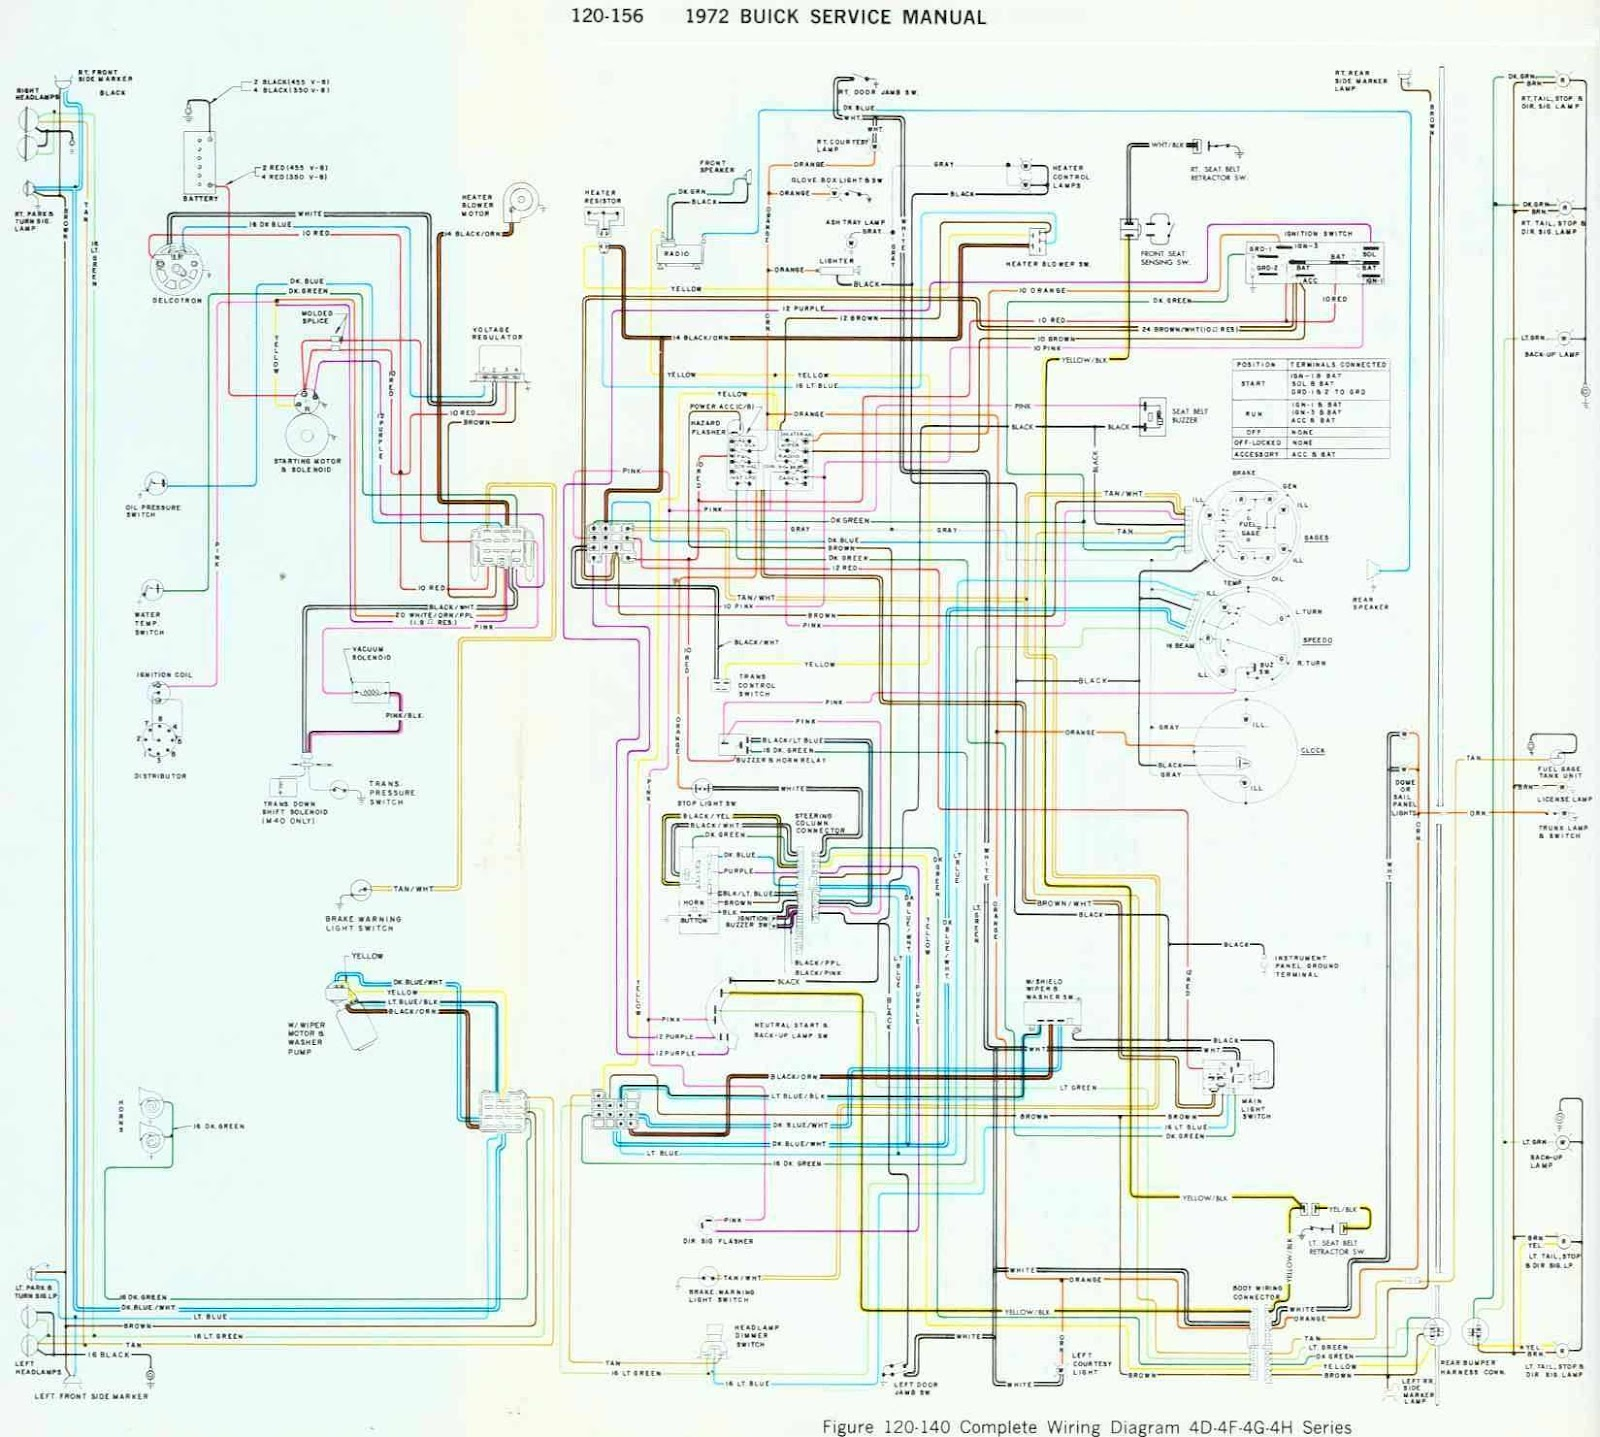 1998 Buick Century Ignition System Wiring Diagram Library. 65 Riviera Wire Diagram Another Blog About Wiring \u2022 1965 Buick Vinyl Top. Buick. 1998 Buick Regal Electrical Diagrams At Scoala.co